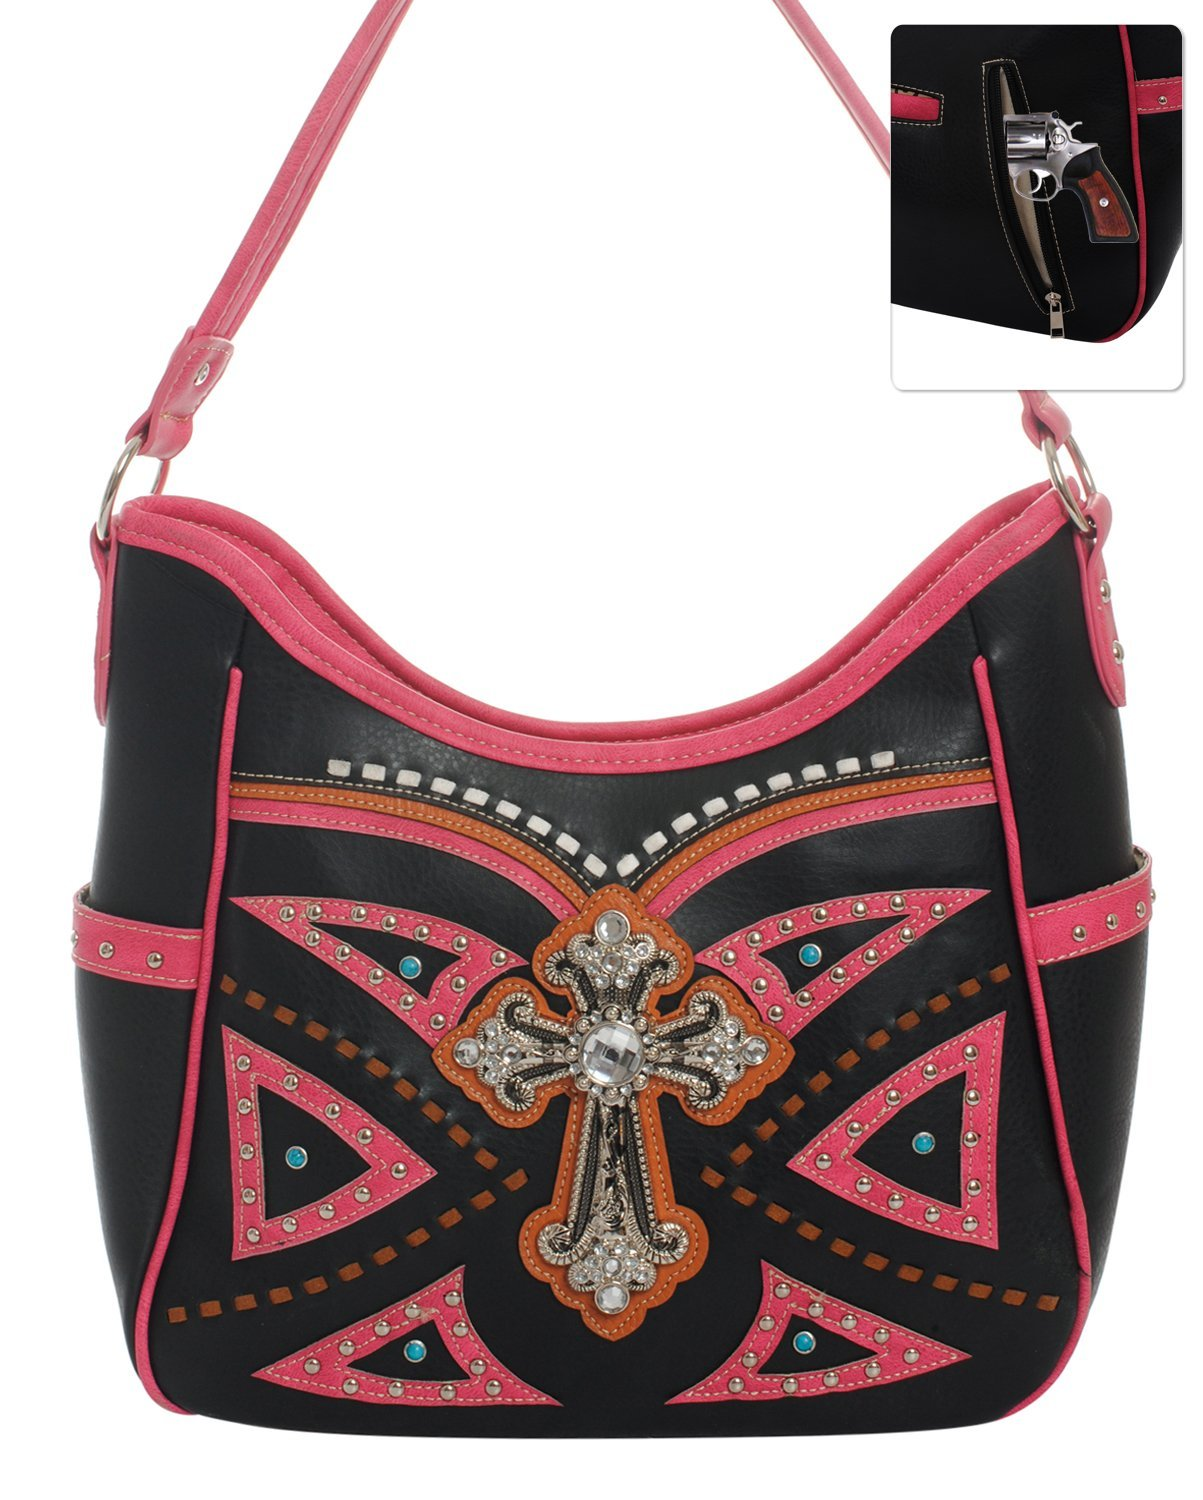 Studded Western Rhinestone Cross Shoulder Handbag Purse (Black Pink)